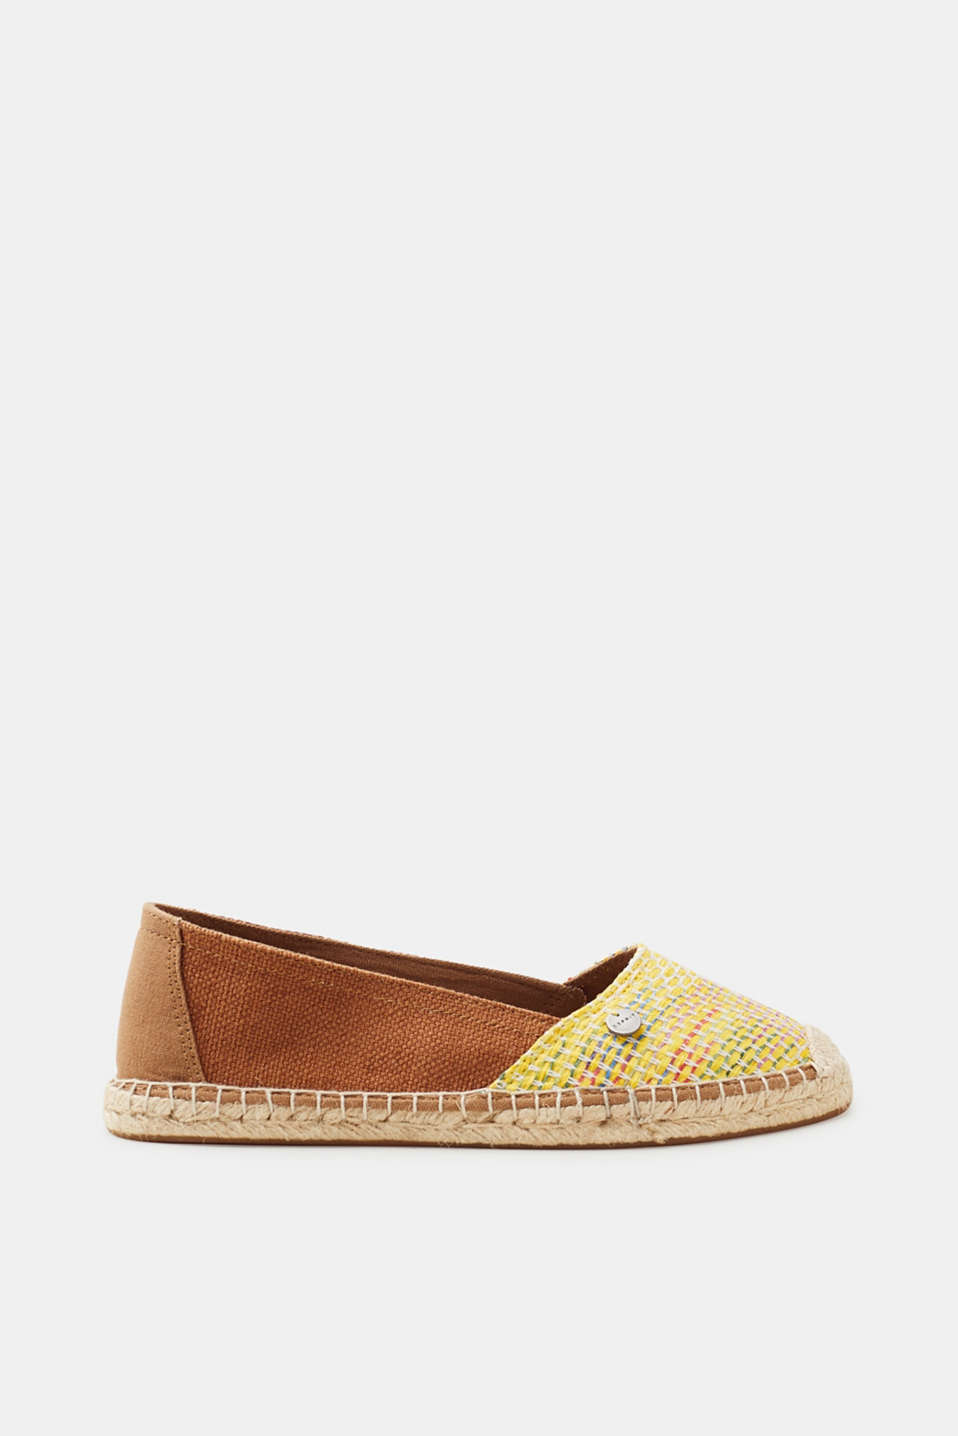 A summer classic: espadrilles. The brightly coloured, woven pattern and bast trim make these ones something special.